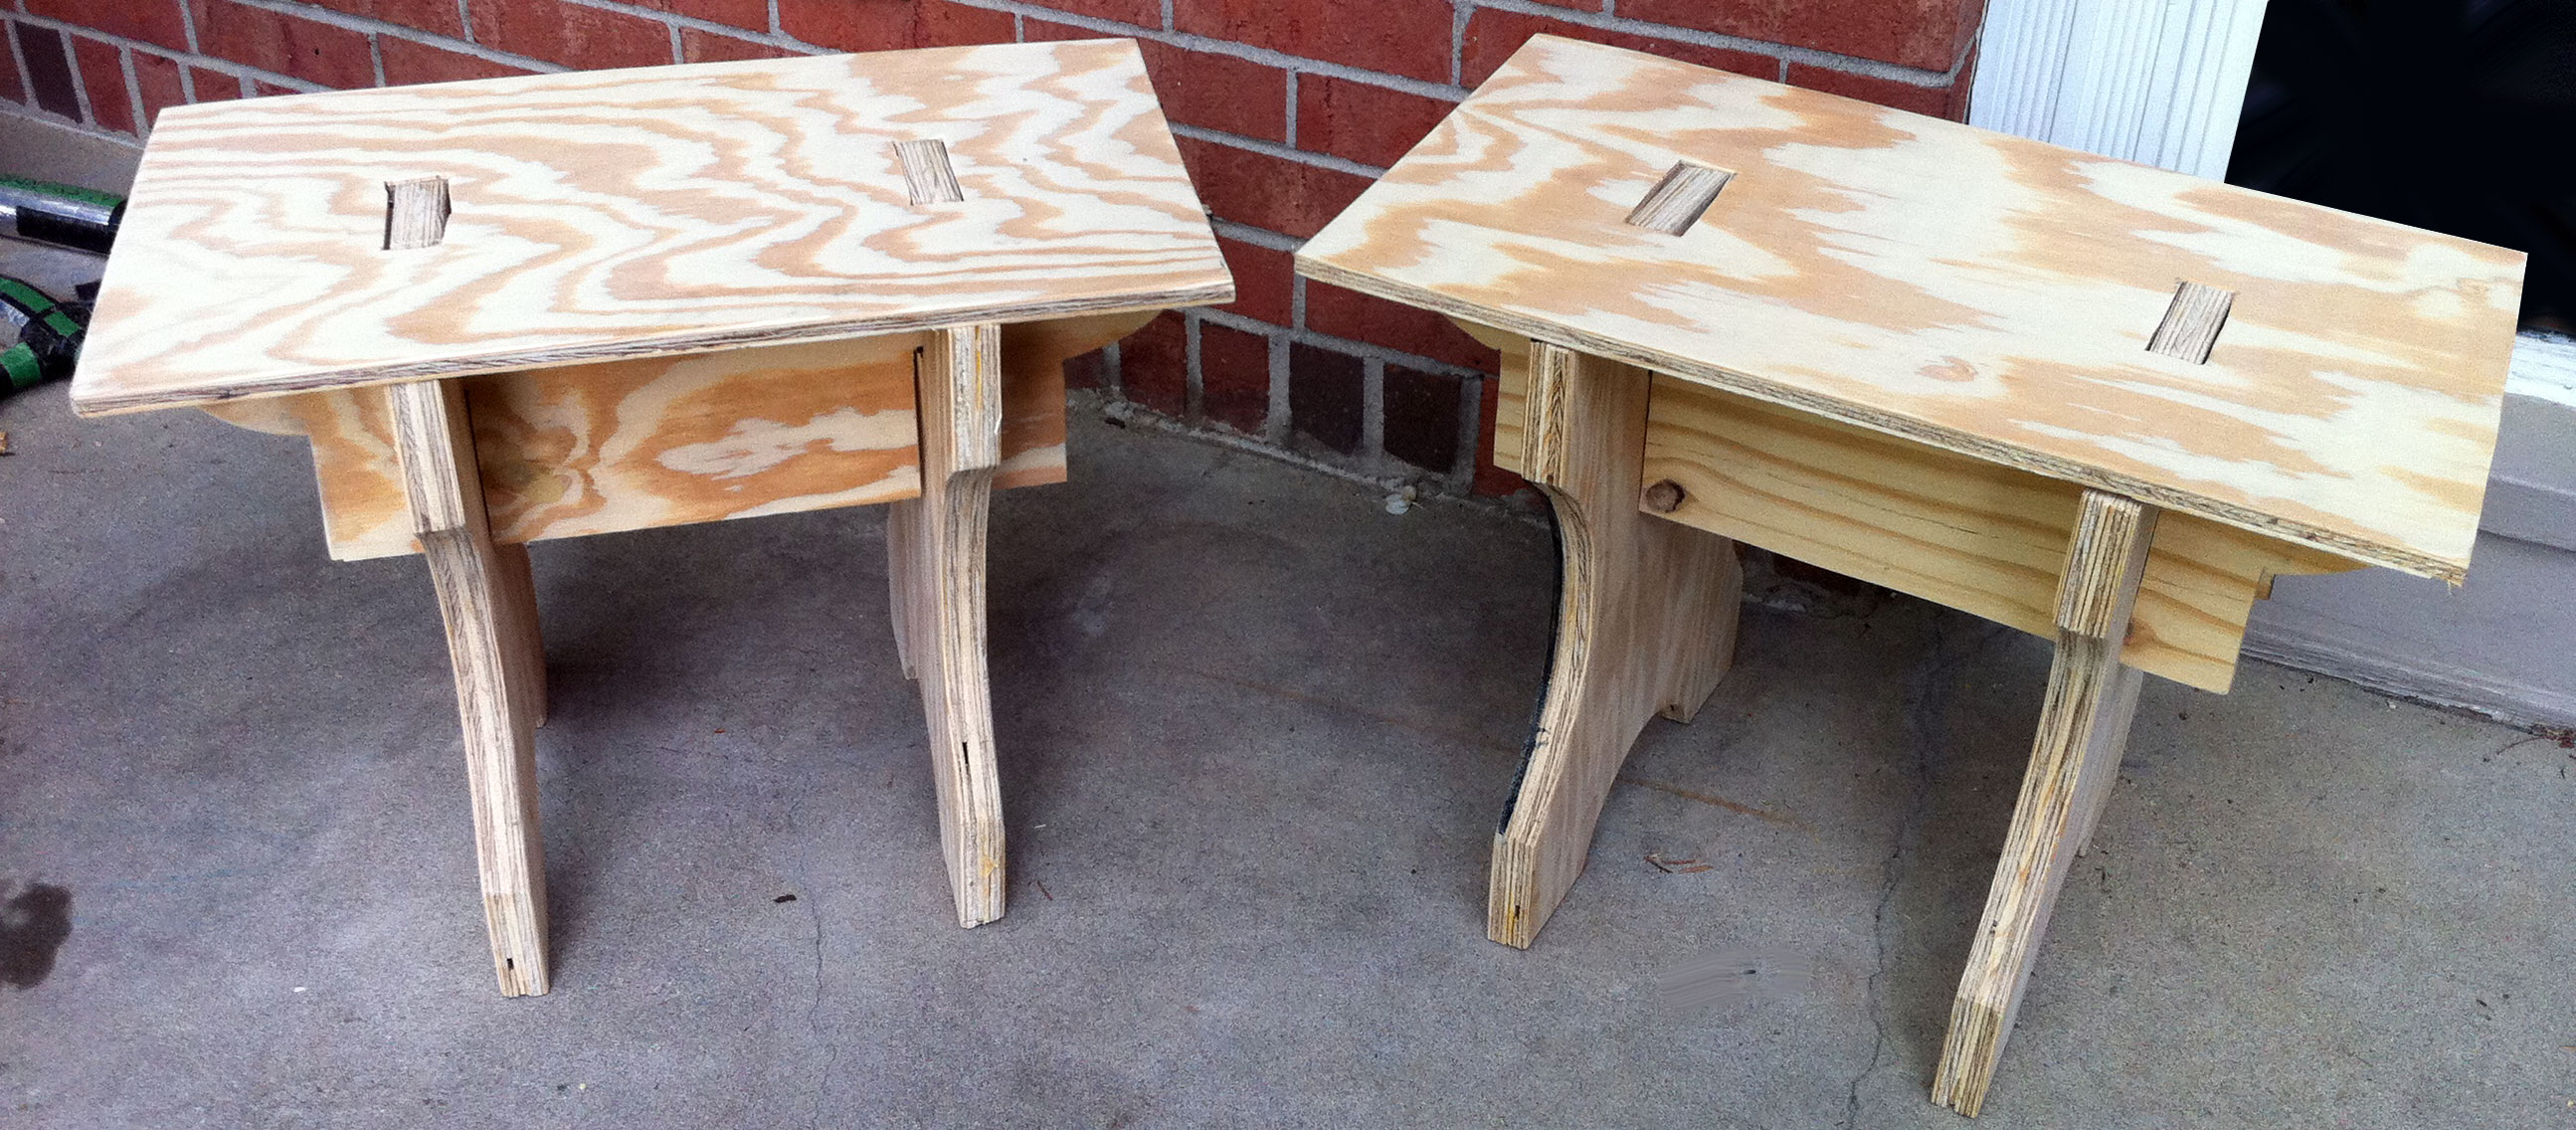 Simple Camp Benches